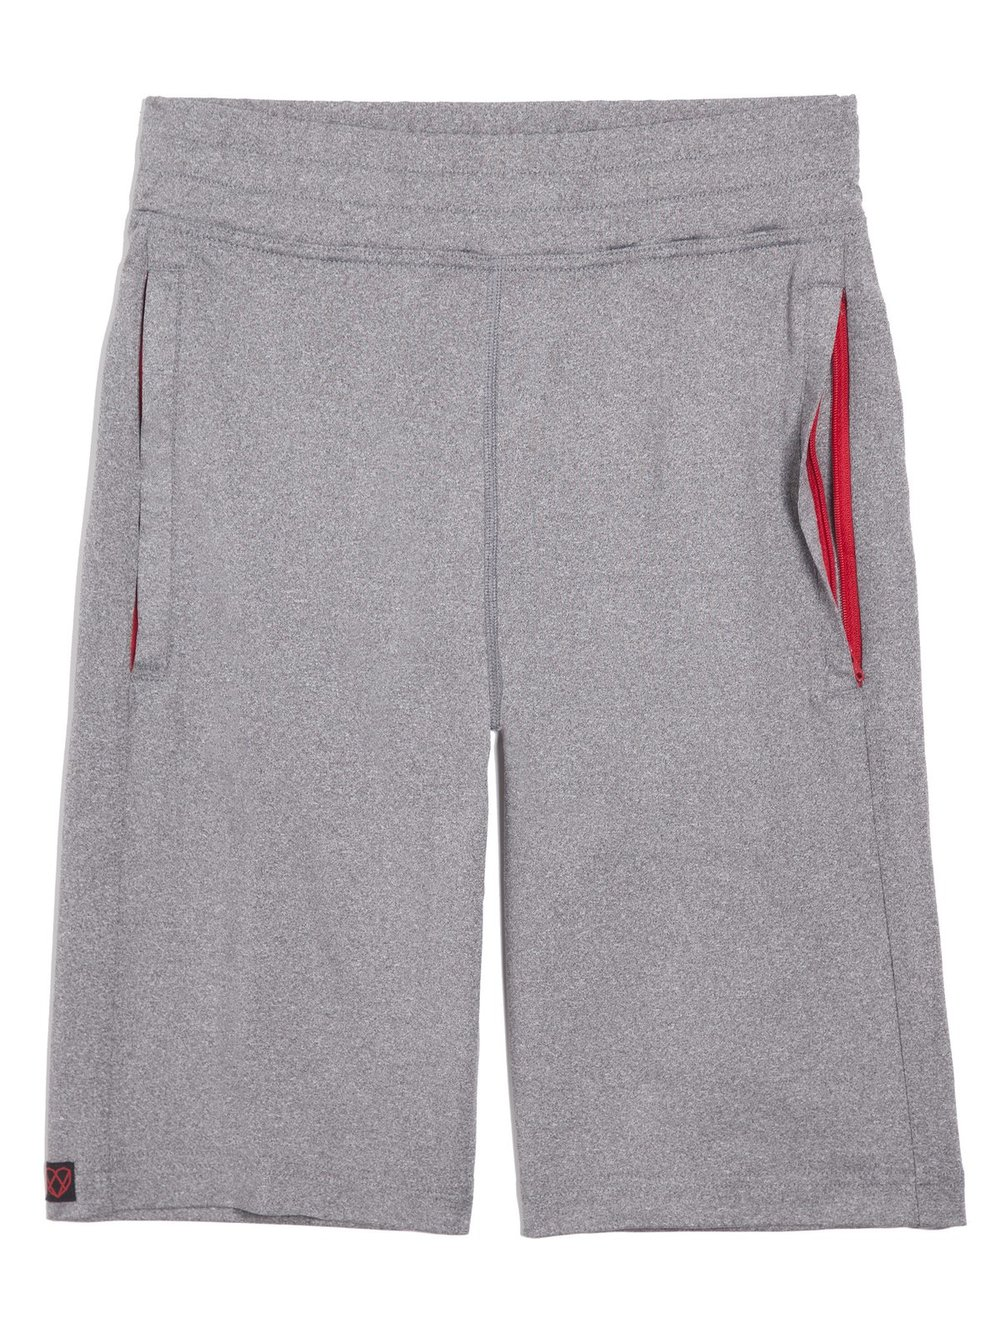 performance_shorts_grey_1200x.jpg